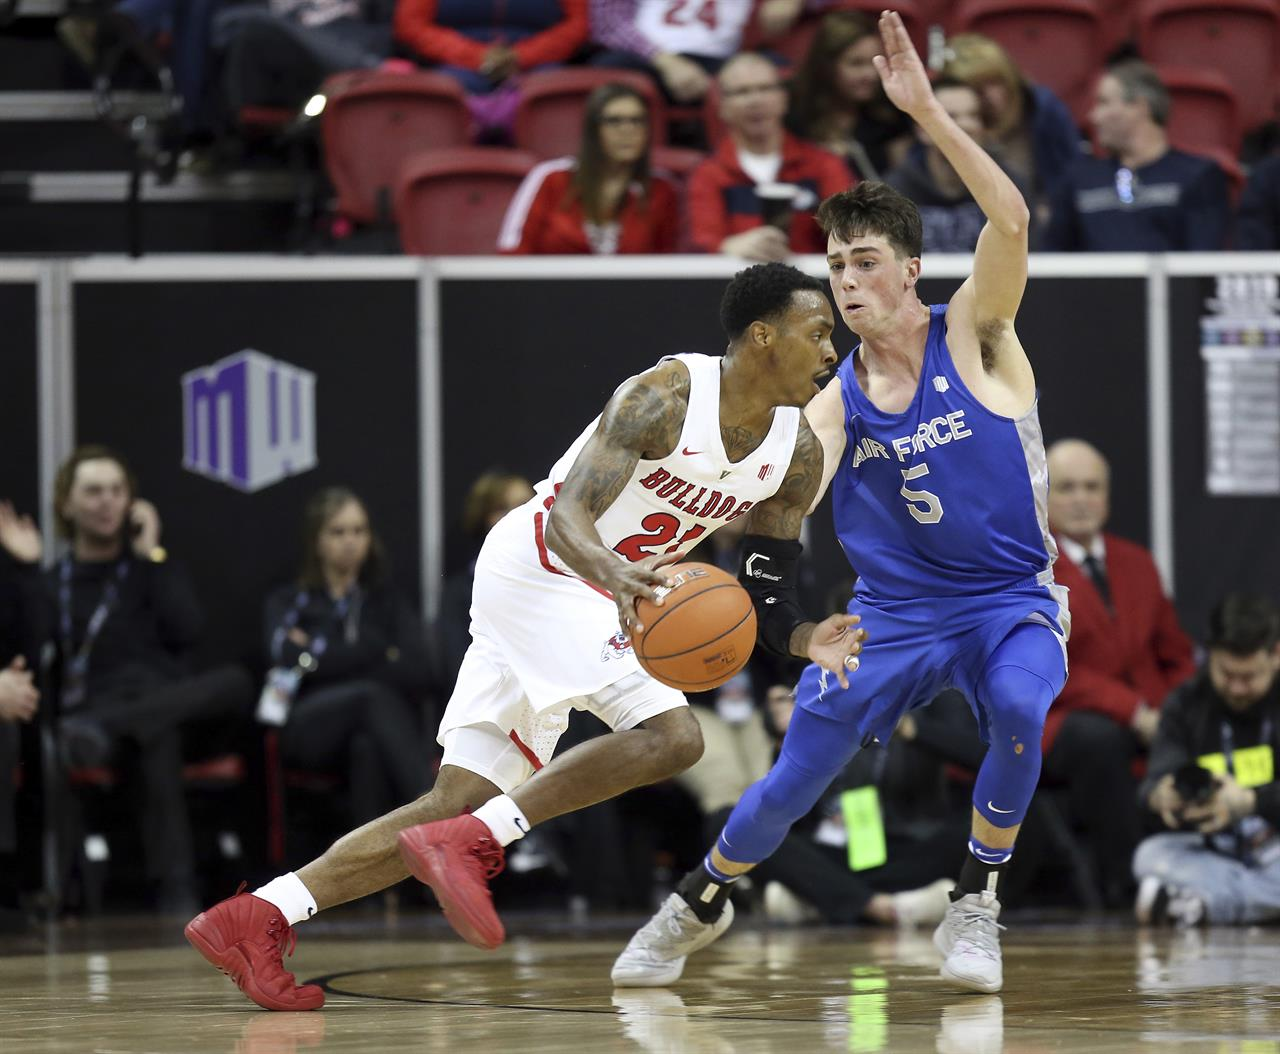 Taylor carries Fresno St. past Air Force 76-50 in MW ...